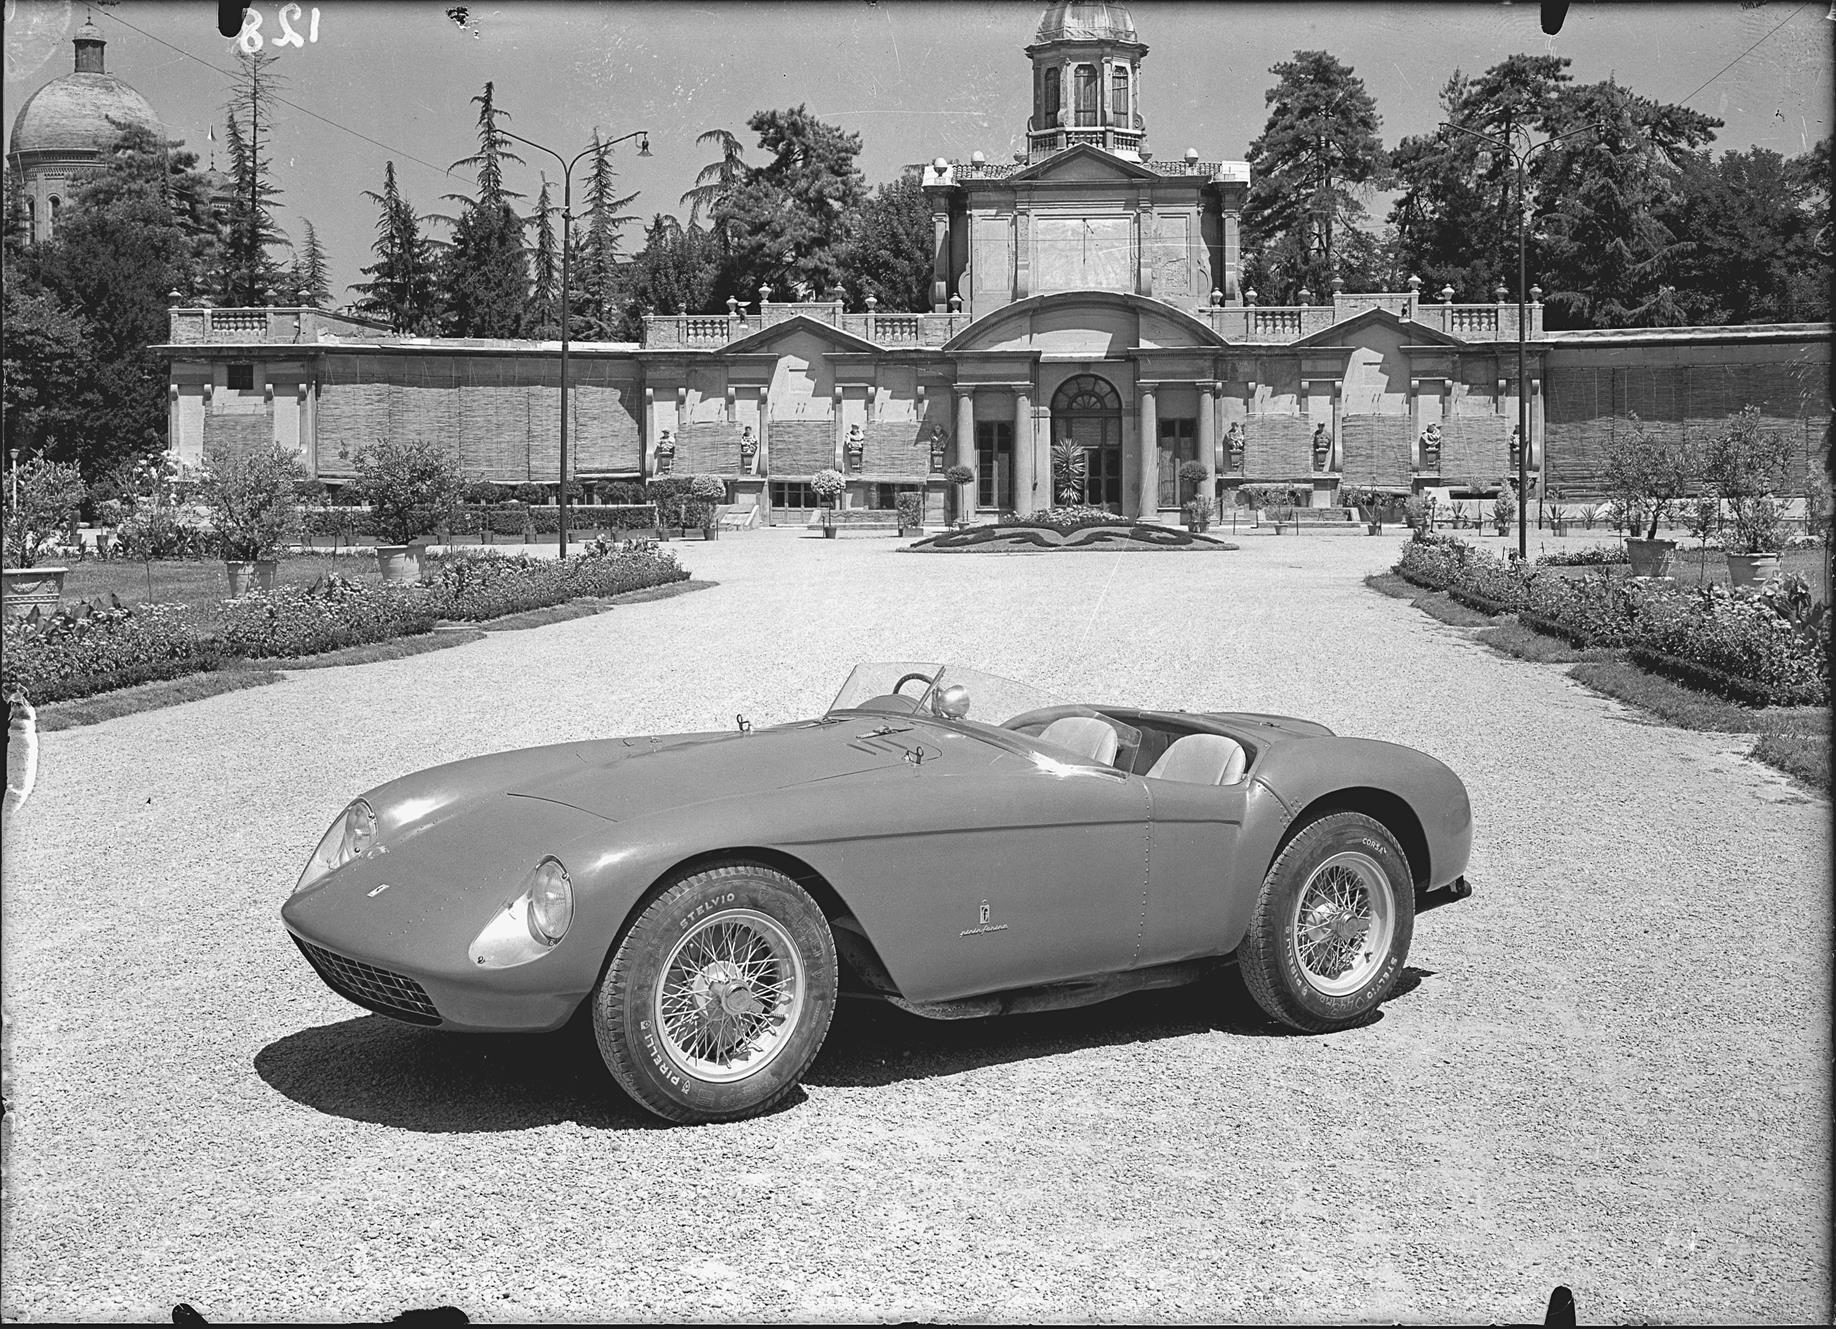 Chassis no. 0448 MD as seen in official Pinin Farina press photographs (Courtesy of Ferrari S.p.A.) RM Sotheby's Villa Erba sale